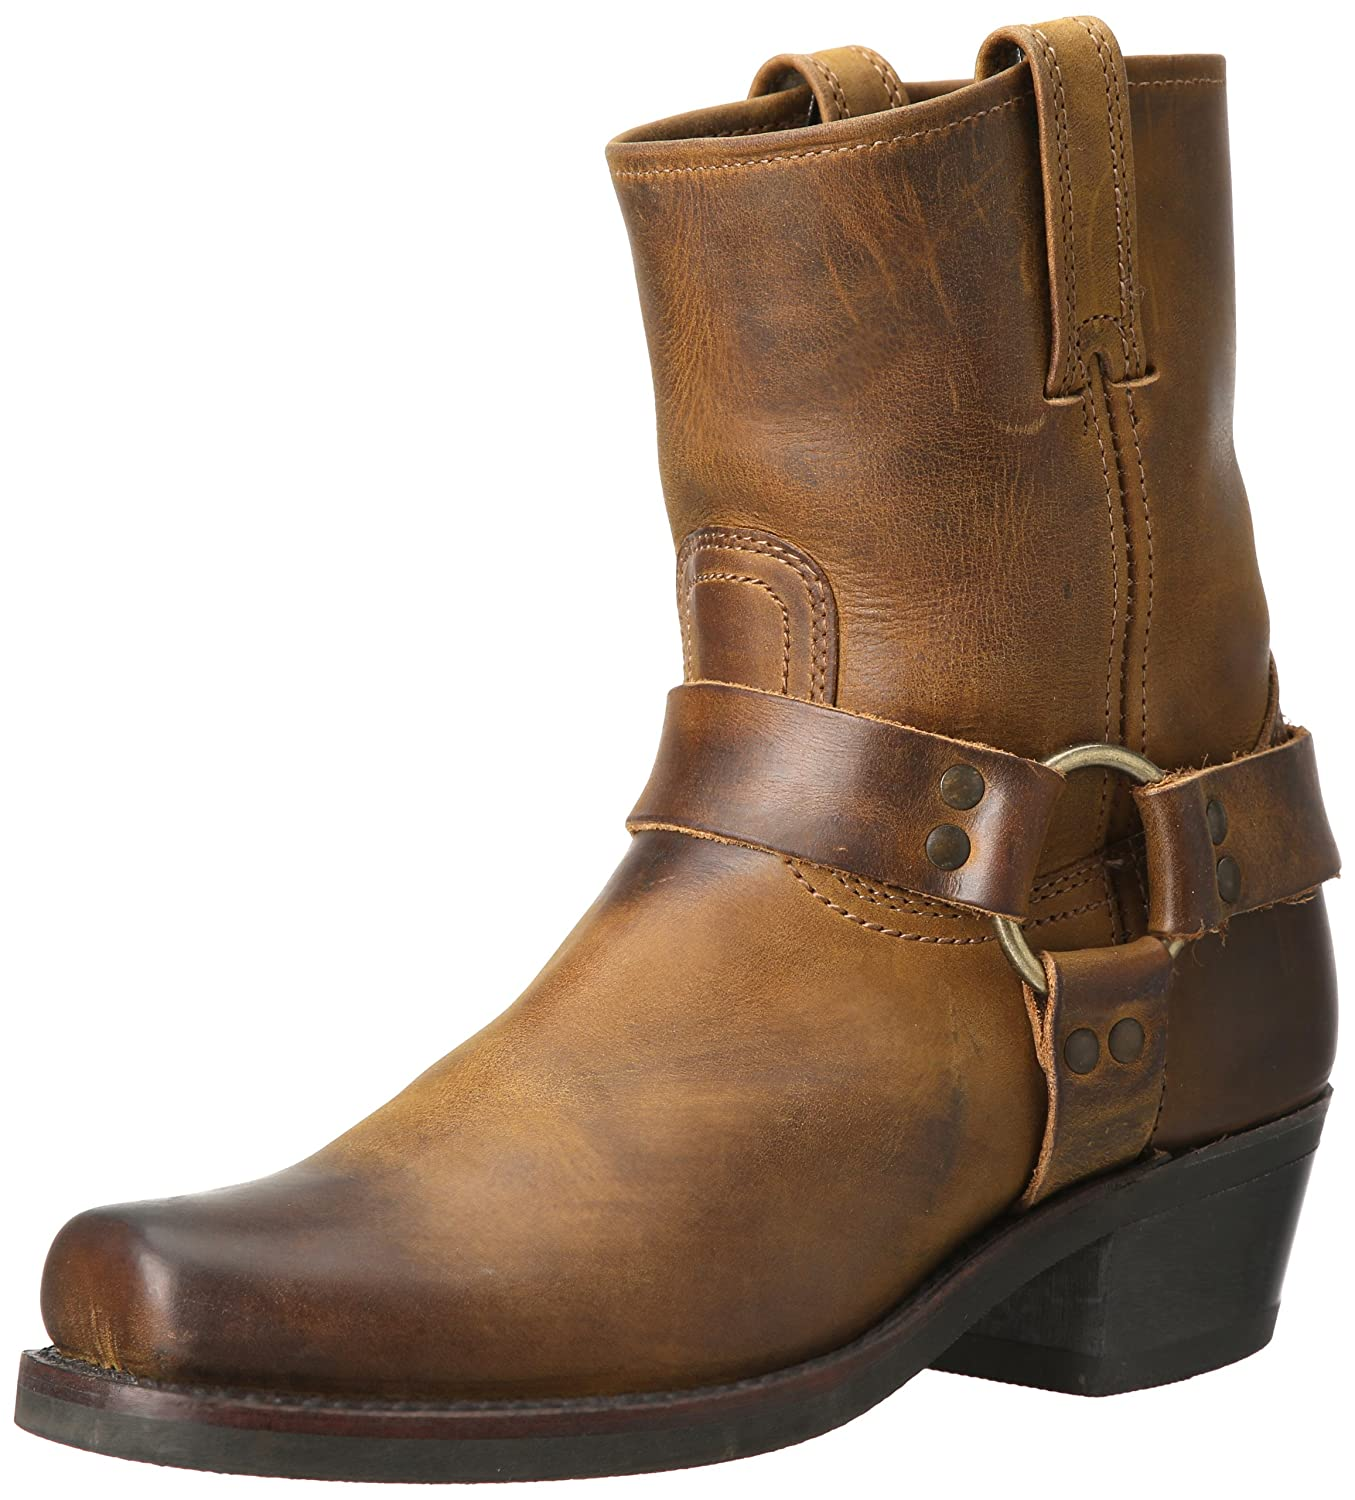 FRYE Women's Harness 8R Boot B004HXZMI6 7 B(M) US|Dark Brown-77455